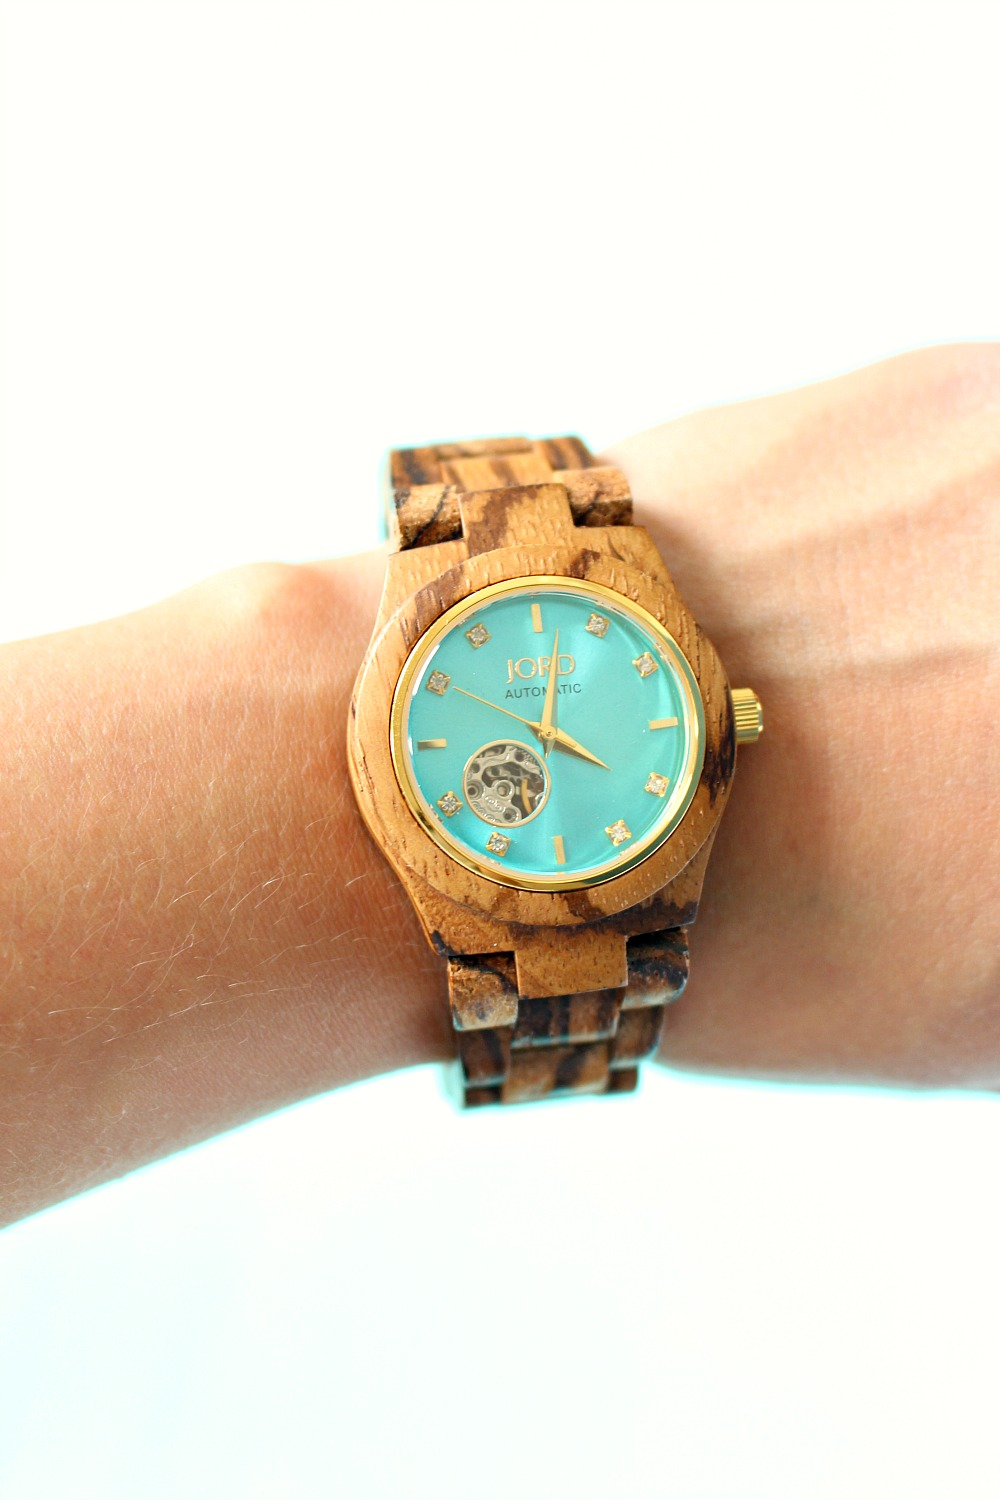 JORD Wood Watch Review - Turquoise and Wood Watch